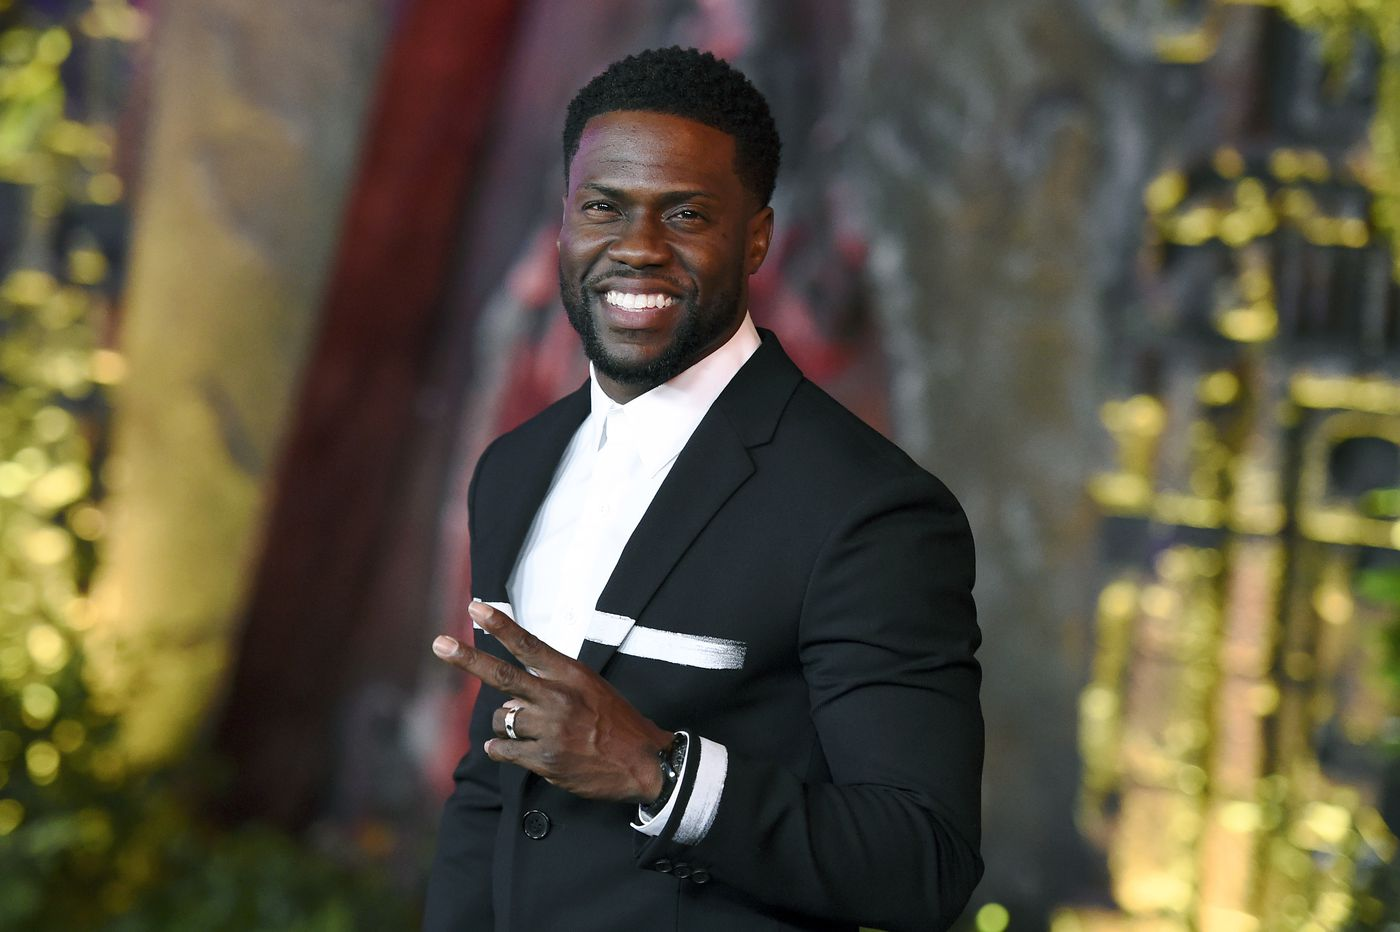 Responding to homophobic tweets, Oscar host Kevin Hart draws more ire